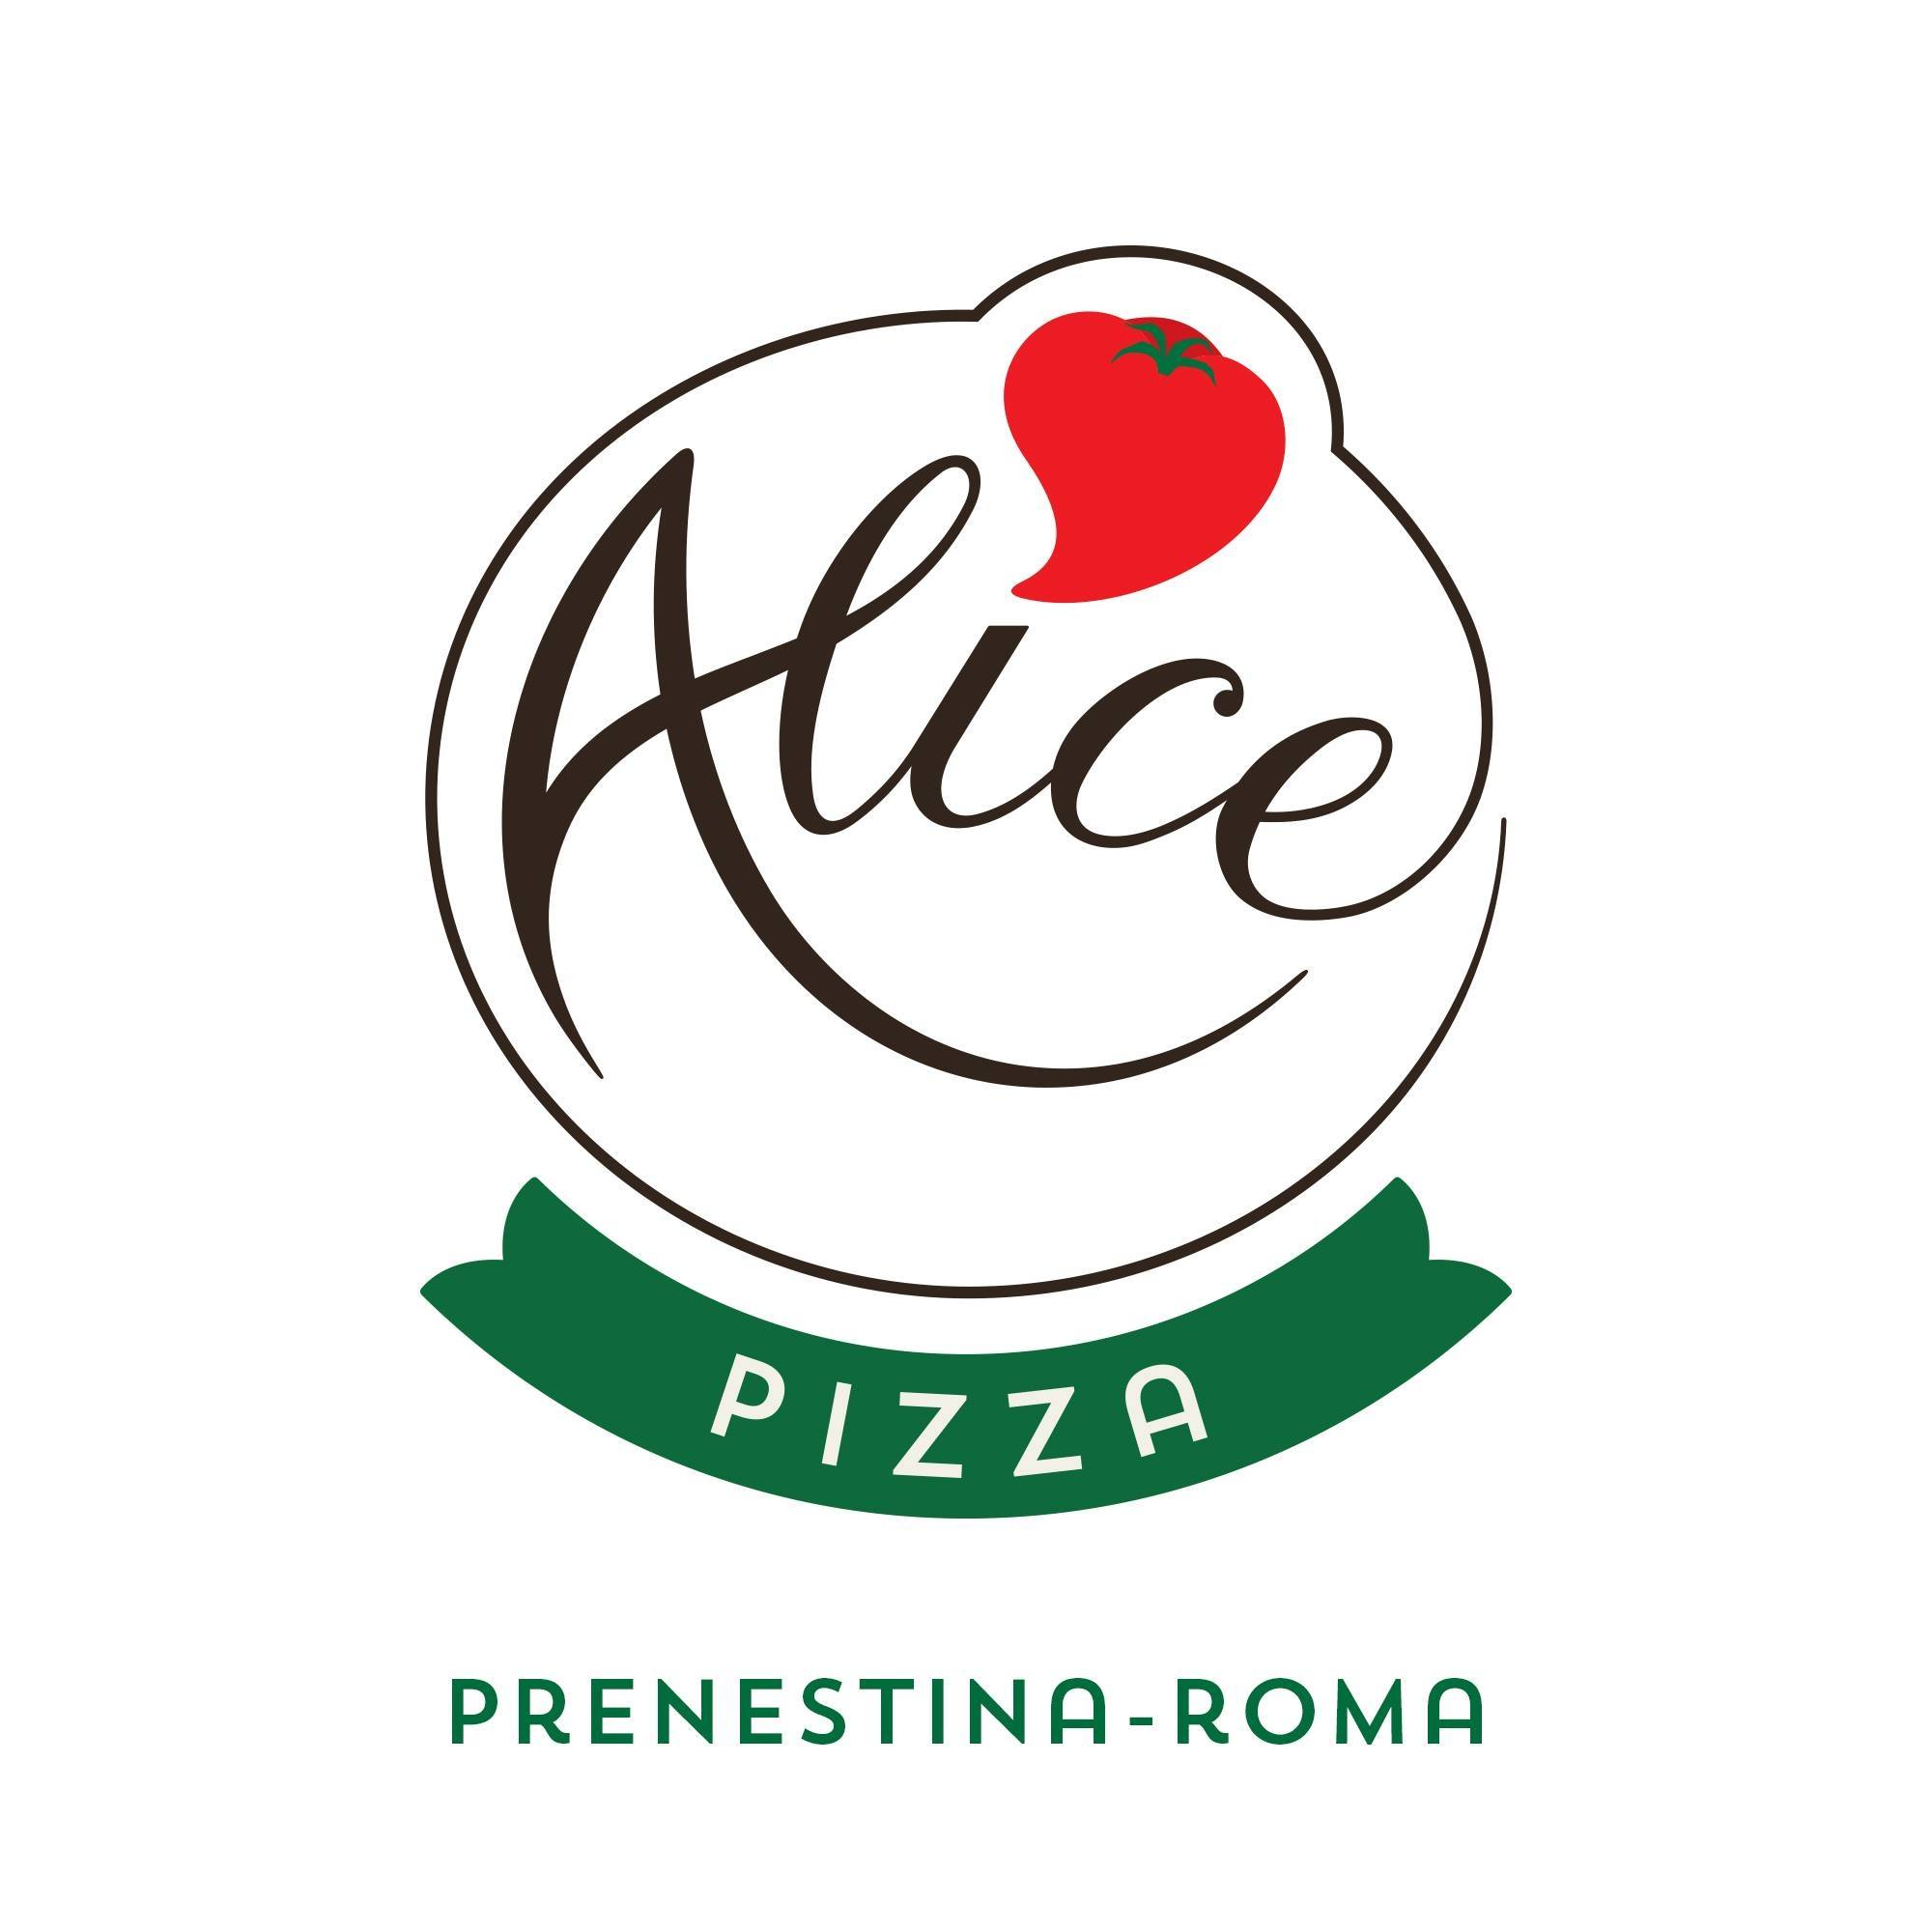 Alice Pizza - Prenestina Roma